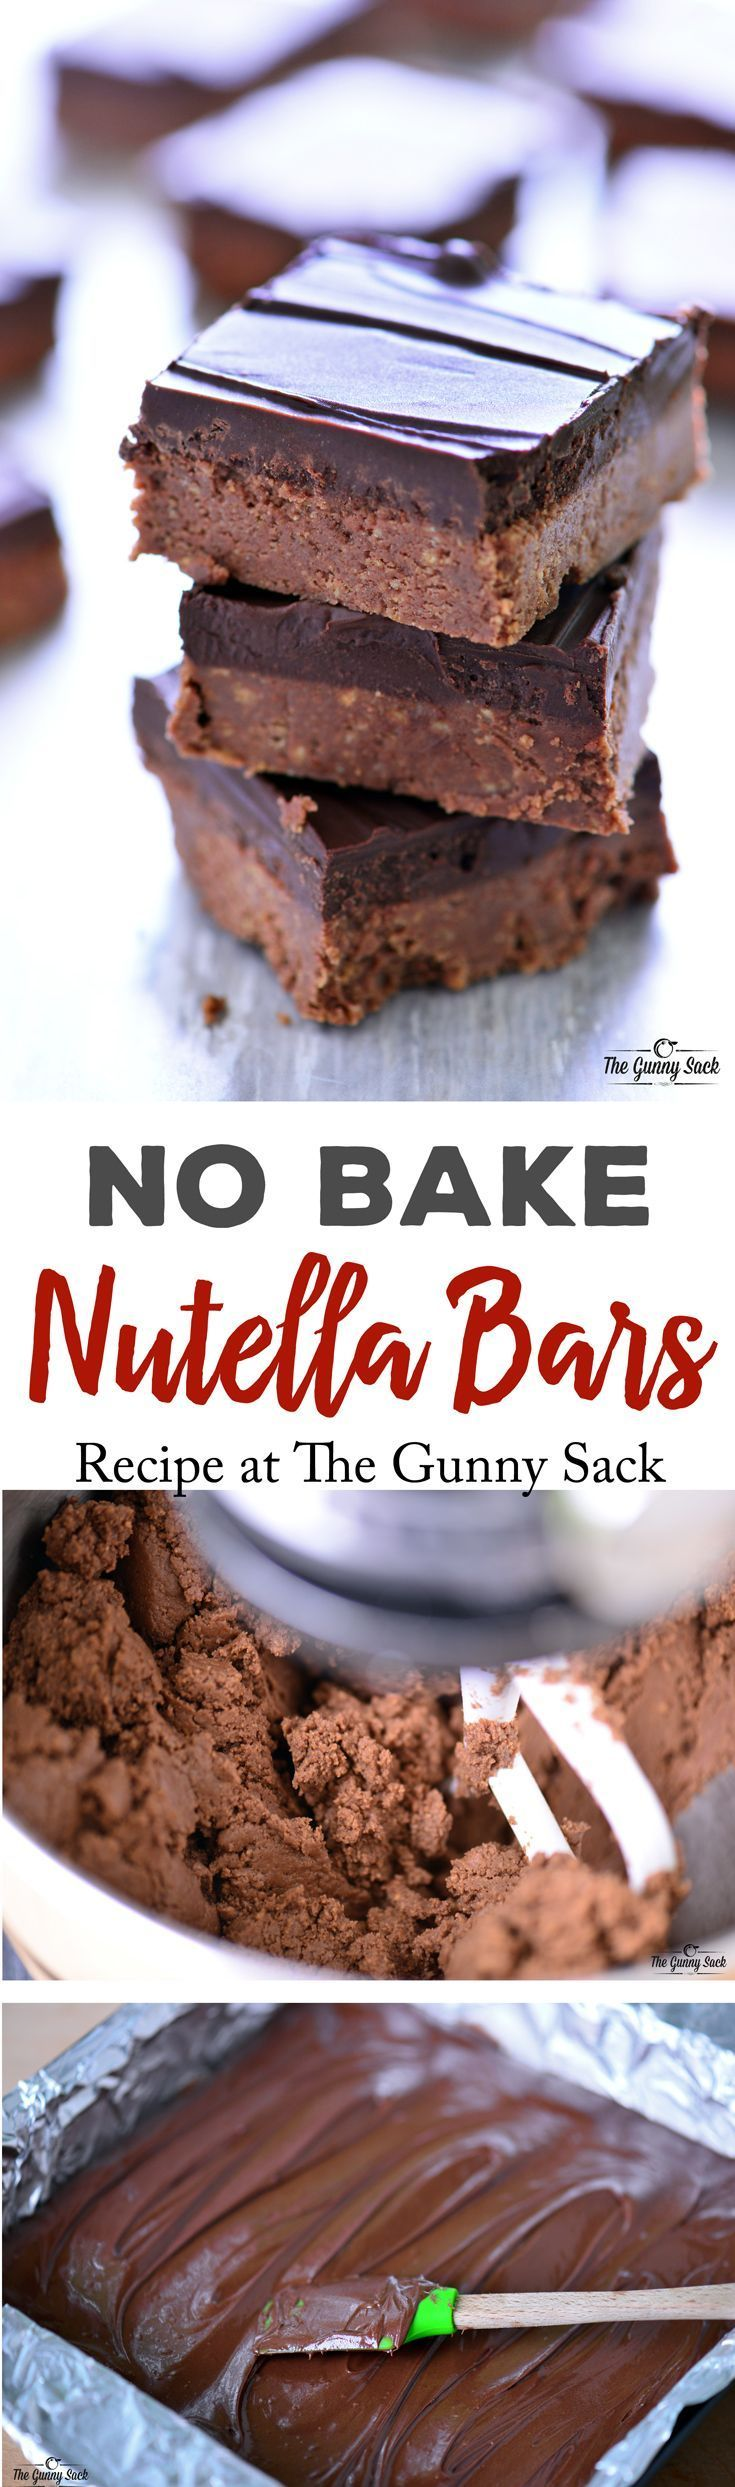 This No Bake Nutella Bars recipe is so easy to make. The texture of these bars is similar to peanut butter cups and everyone loved them! | thegunnysack.com